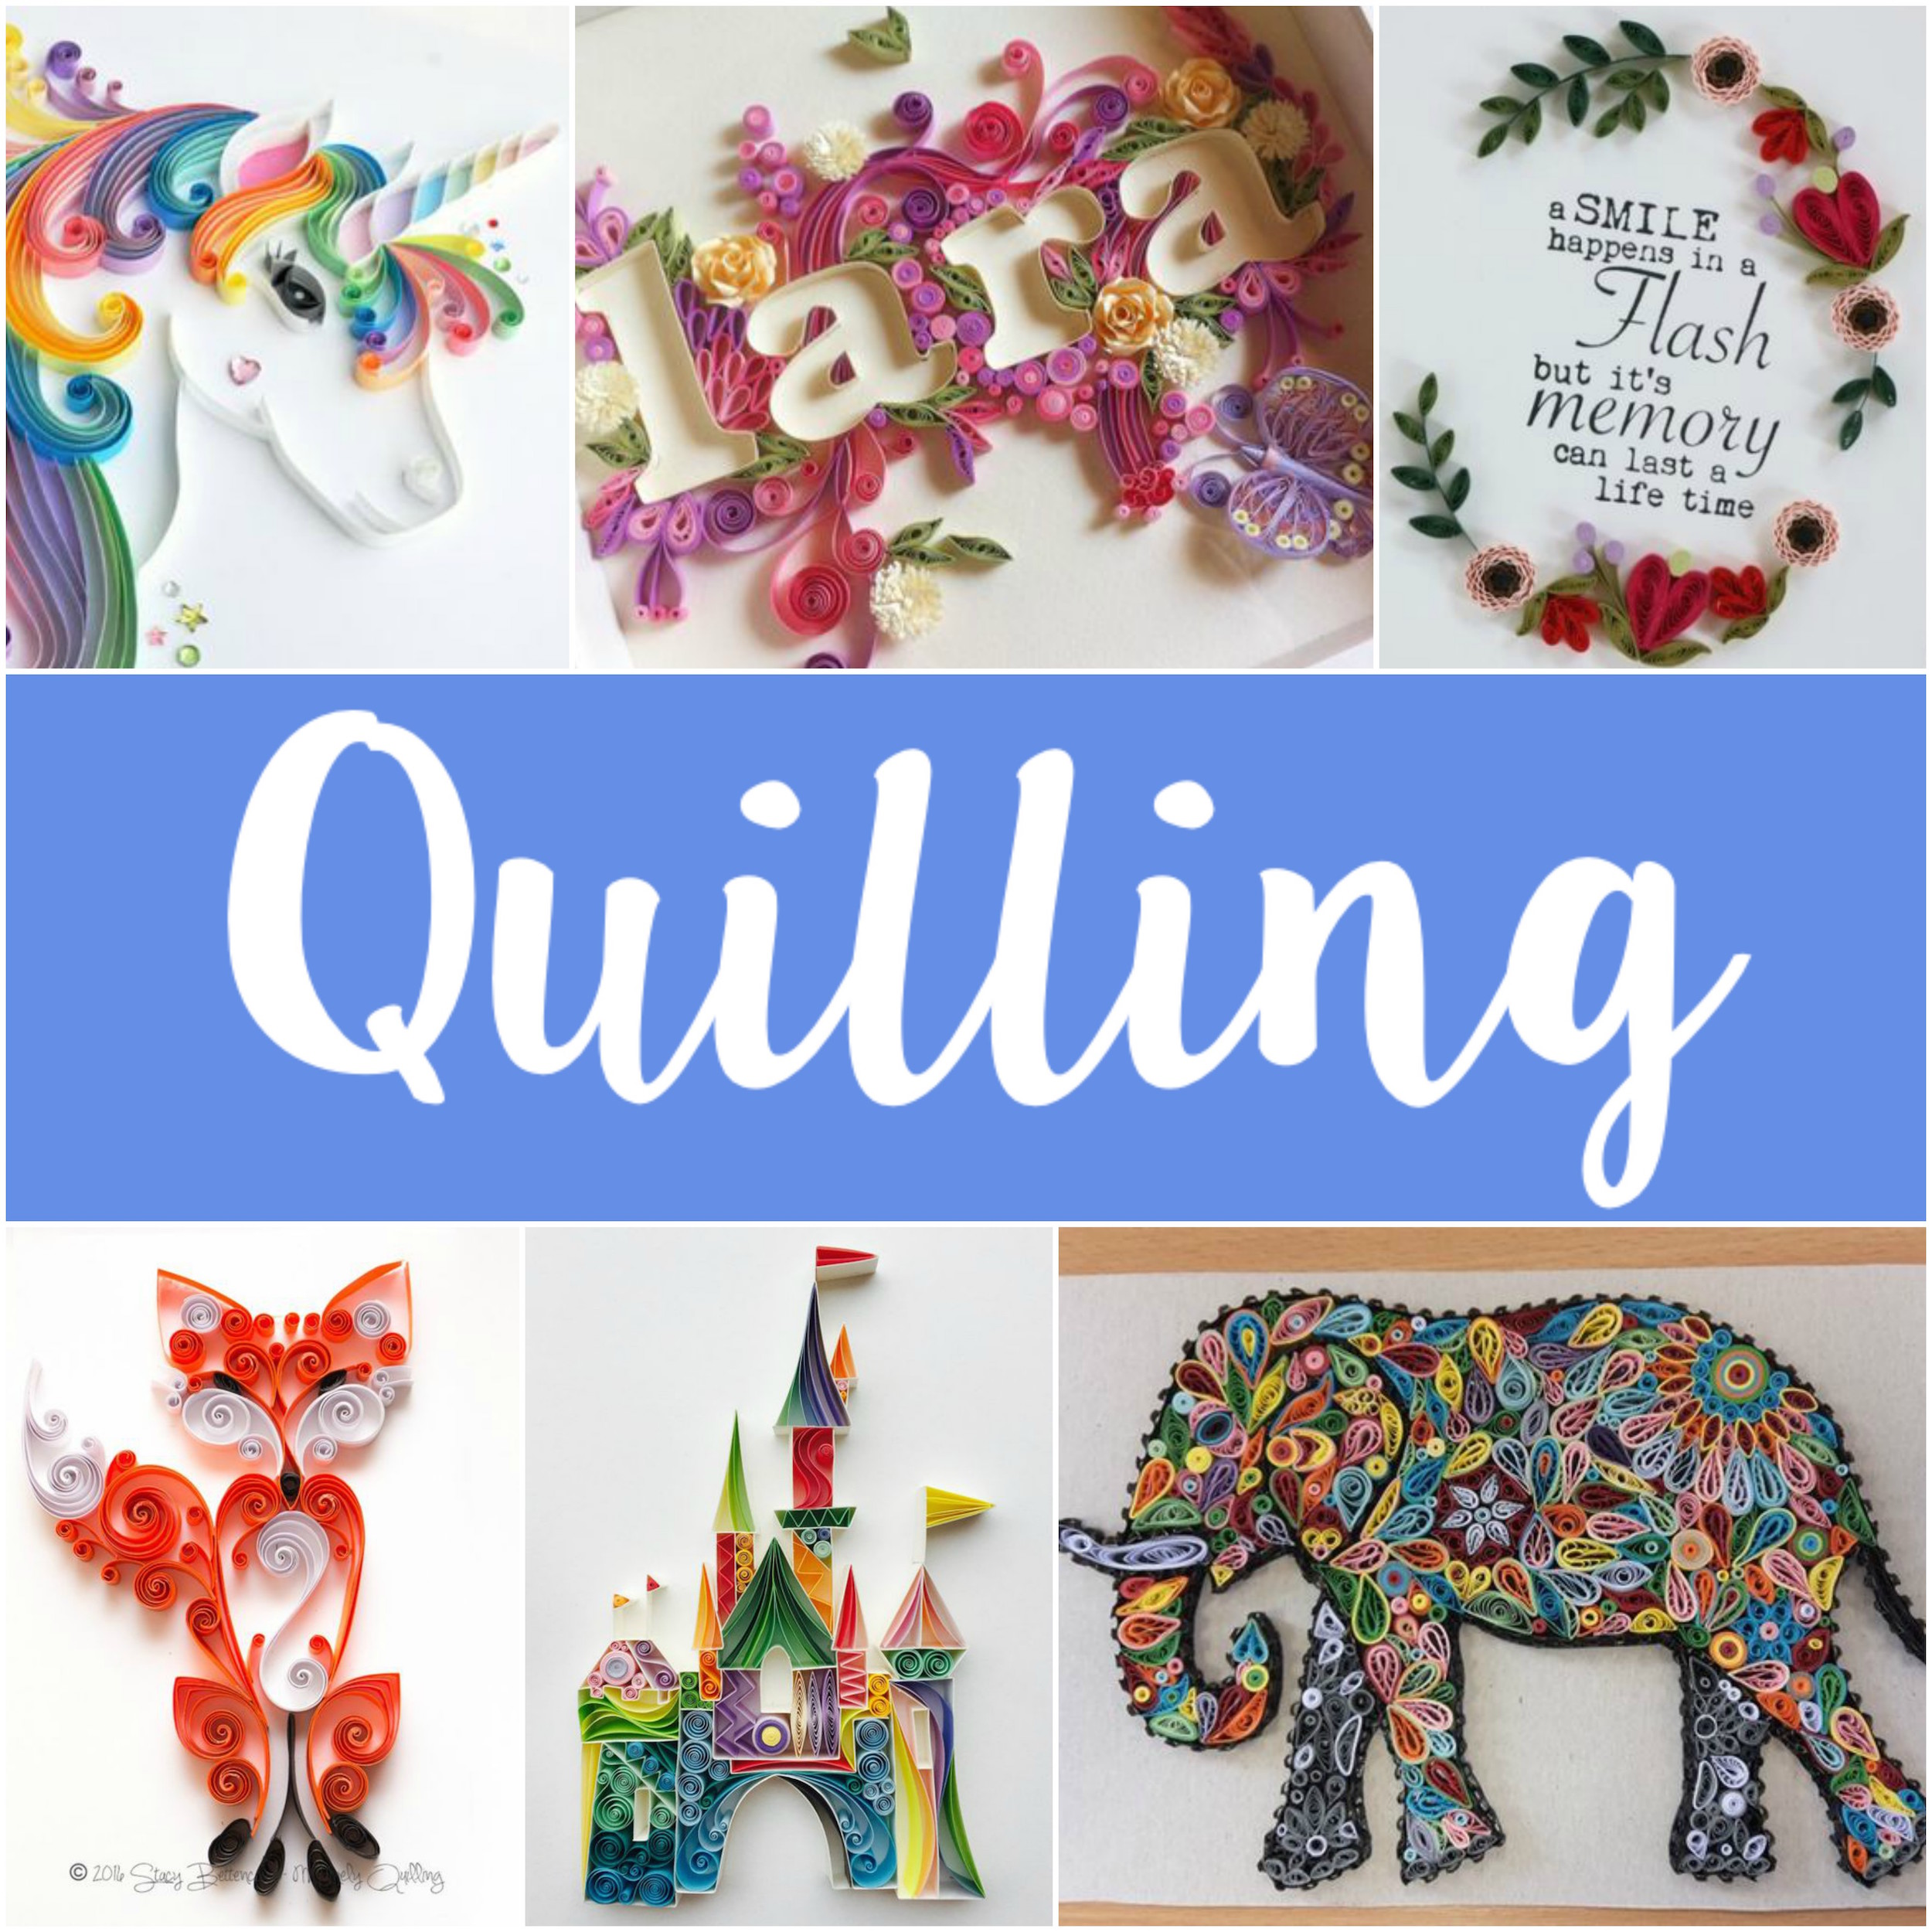 Top 5 Quilling ideas for you to try!